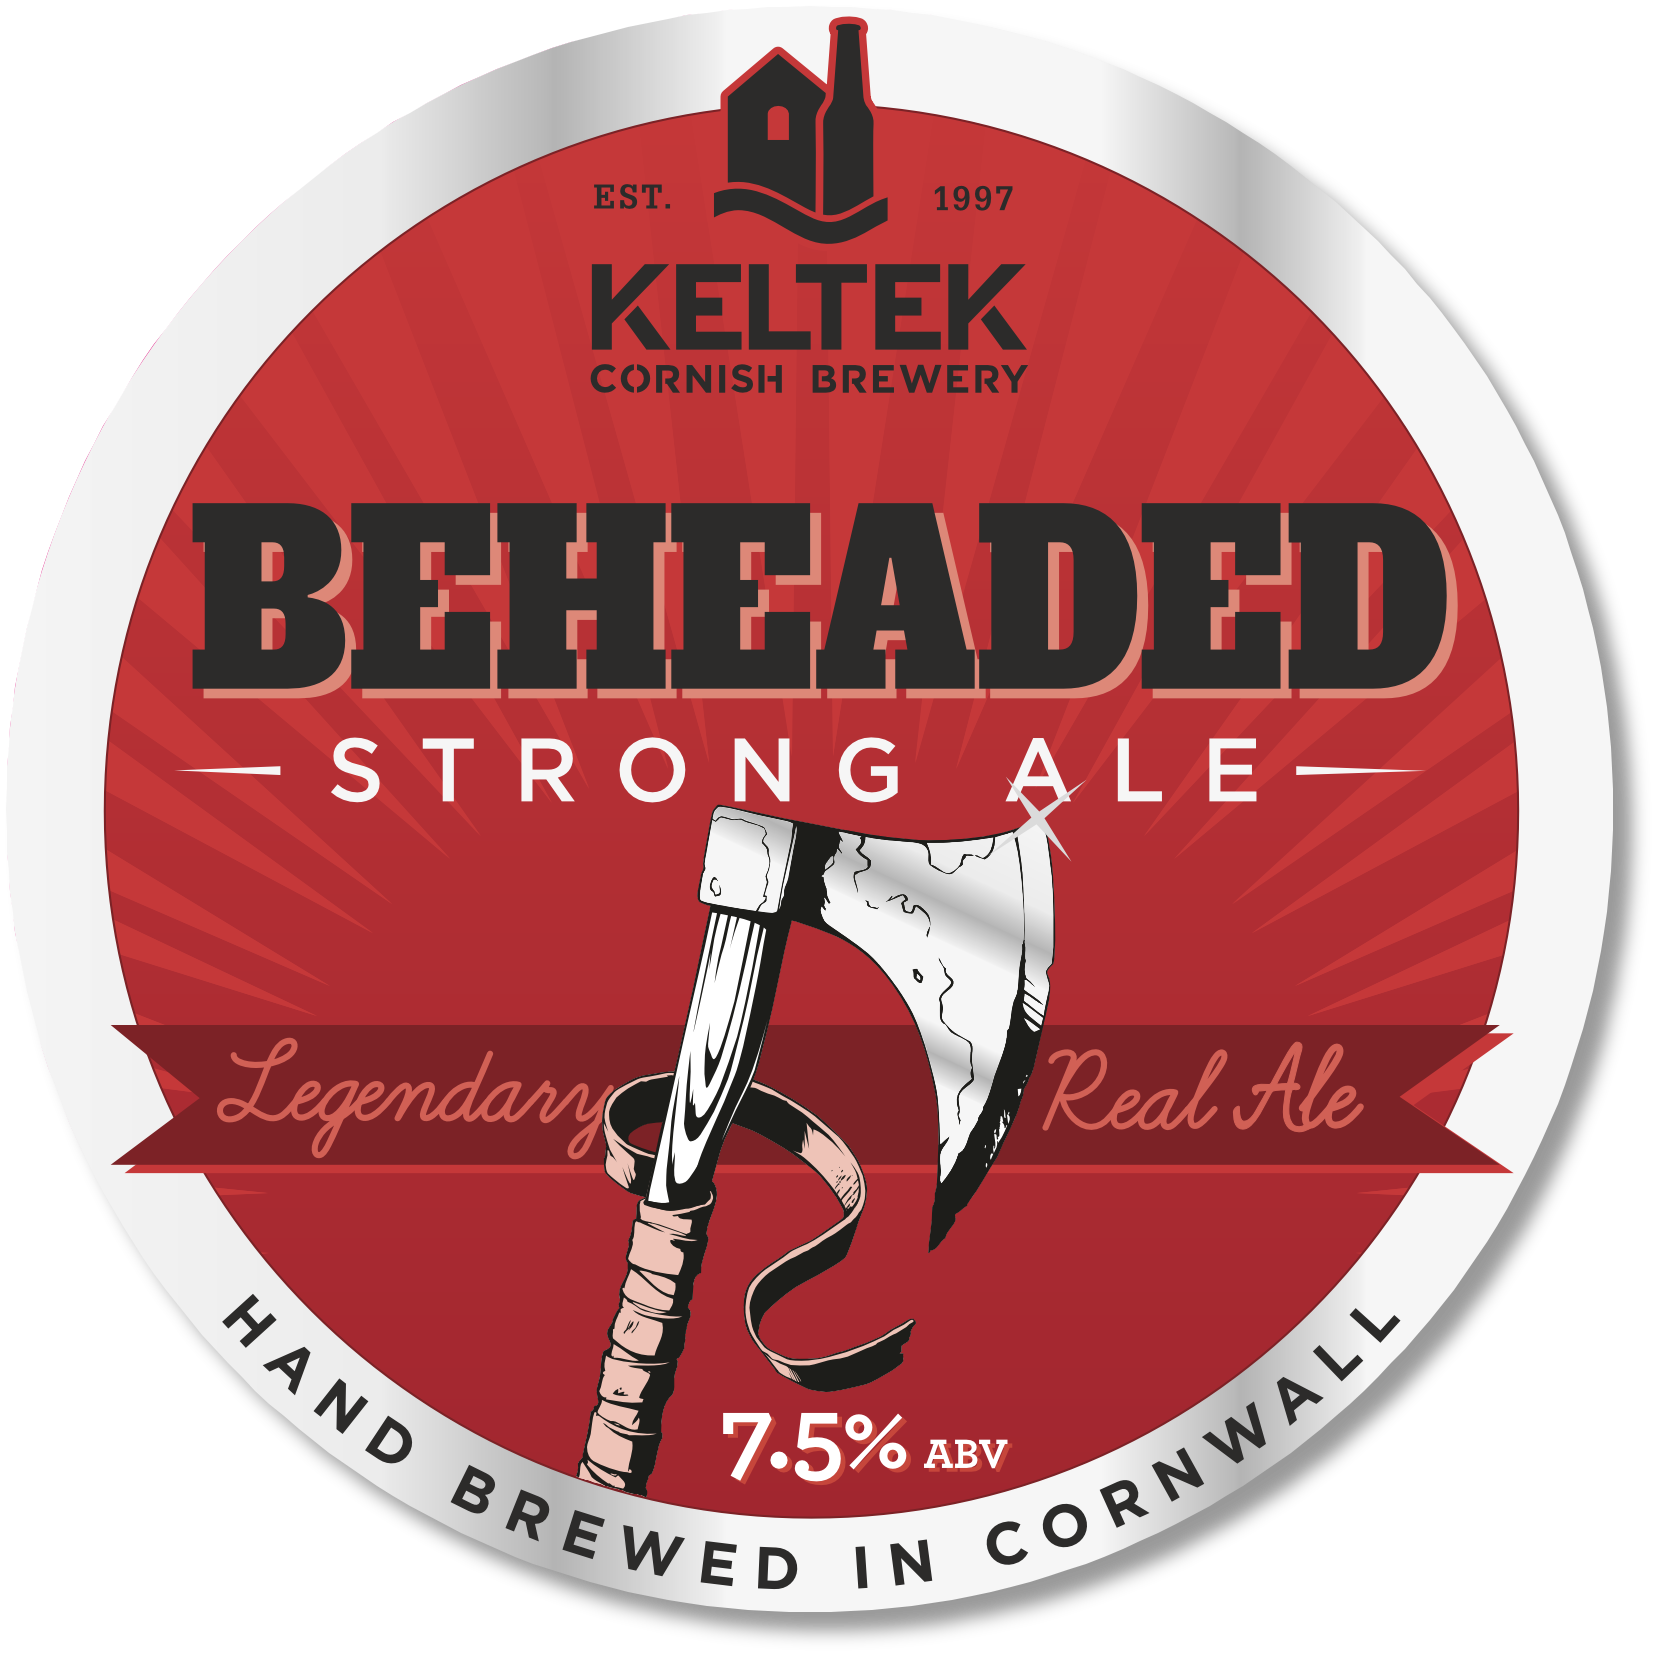 Beheaded 7.5% - Beheaded is our strongest ale; dark and deceptive with a smooth, slightly sweet first impression and none of the alcoholic twang often associated with strong beers. Its complex, indulgent flavour is legendary. SIBA South West Beer Competition Strong Ales Bronze Medal Winner.